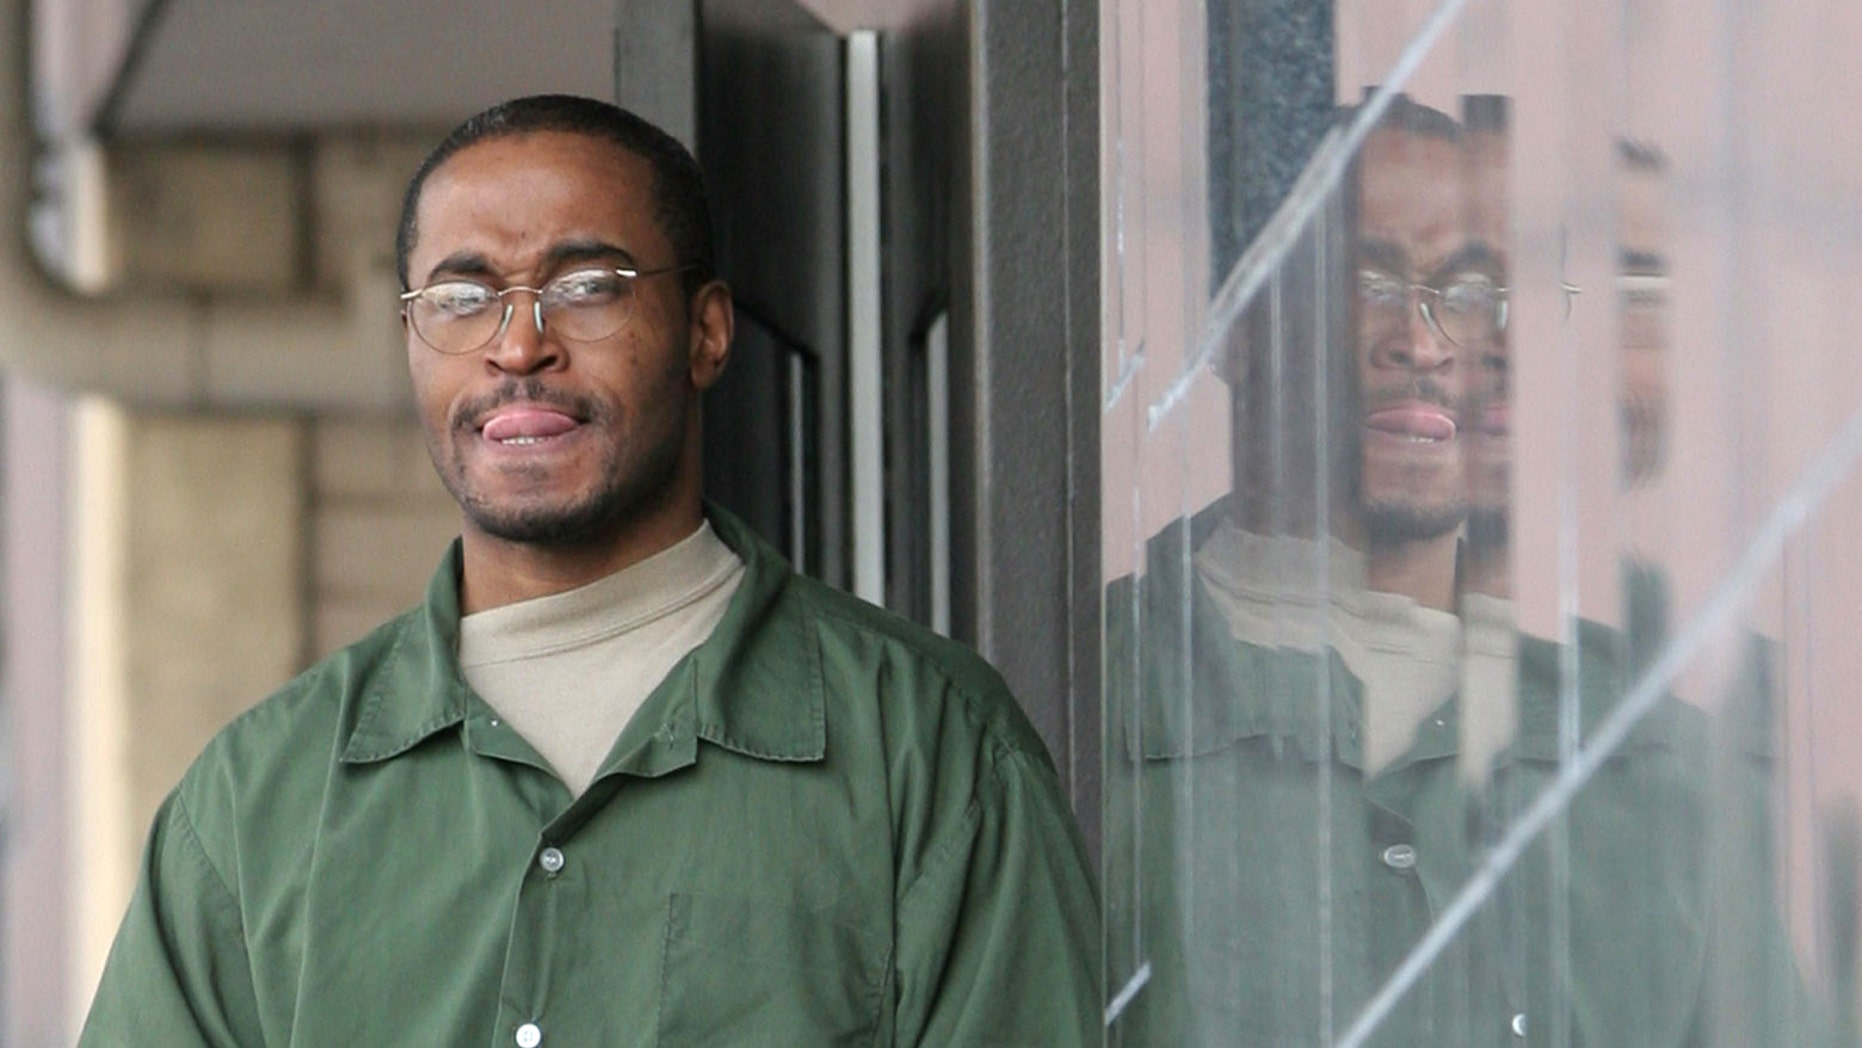 FILE - In this March 21, 2005, file photo  truck driver Tyrone Williams leaves the federal courthouse in Houston in shackles. Williams was resentenced to nearly 34 years in prison on Monday, Jan. 24, 2011, after a federal appeals court last year overturned the multiple life sentences he received for his role in America's deadliest human smuggling attempt, which resulted in the deaths of 19 illegal immigrants in 2003. (AP Photo/Pat Sullivan)